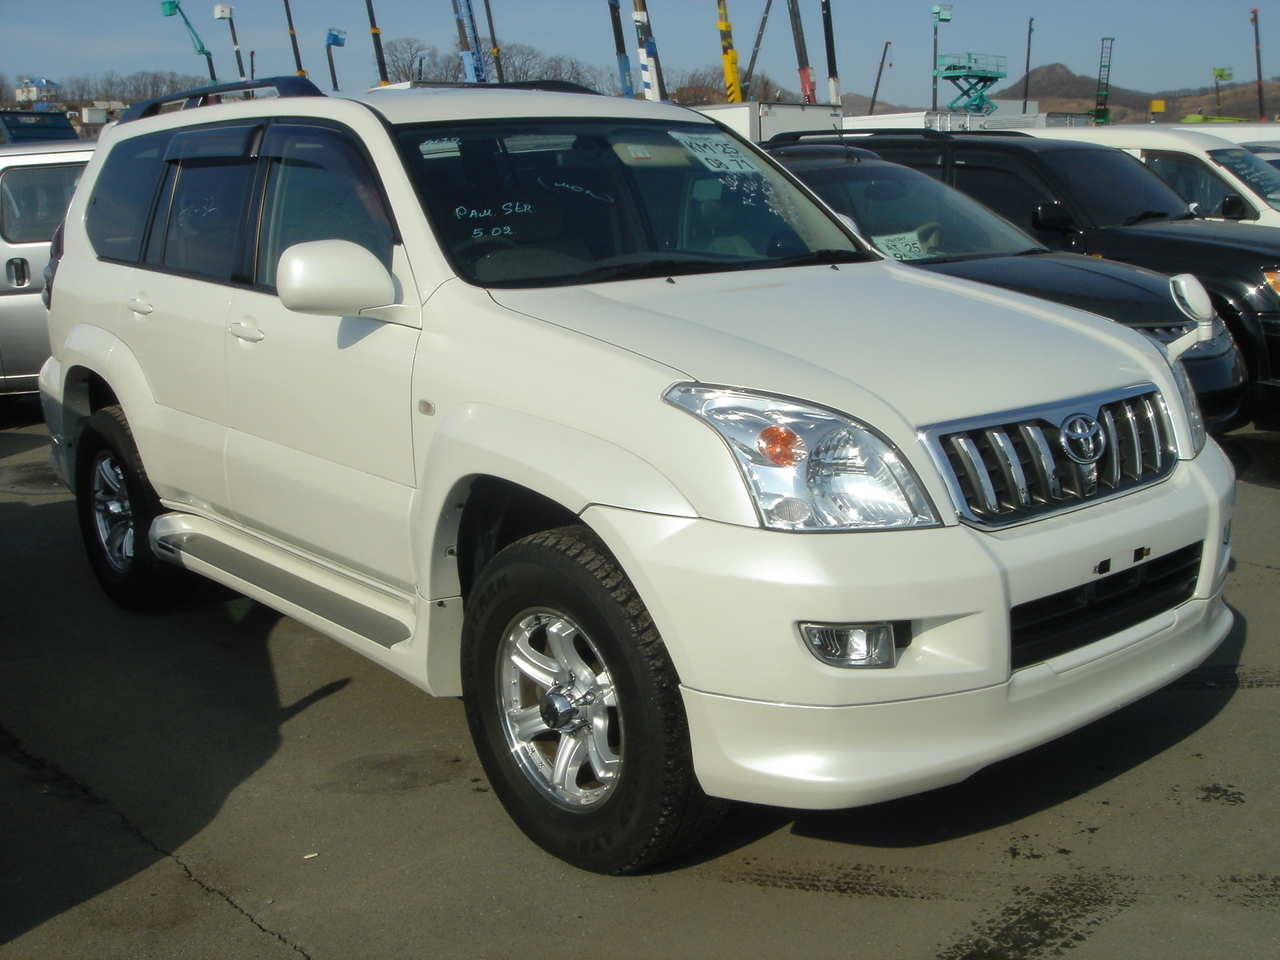 2004 toyota land cruiser prado pics 2 7 gasoline. Black Bedroom Furniture Sets. Home Design Ideas